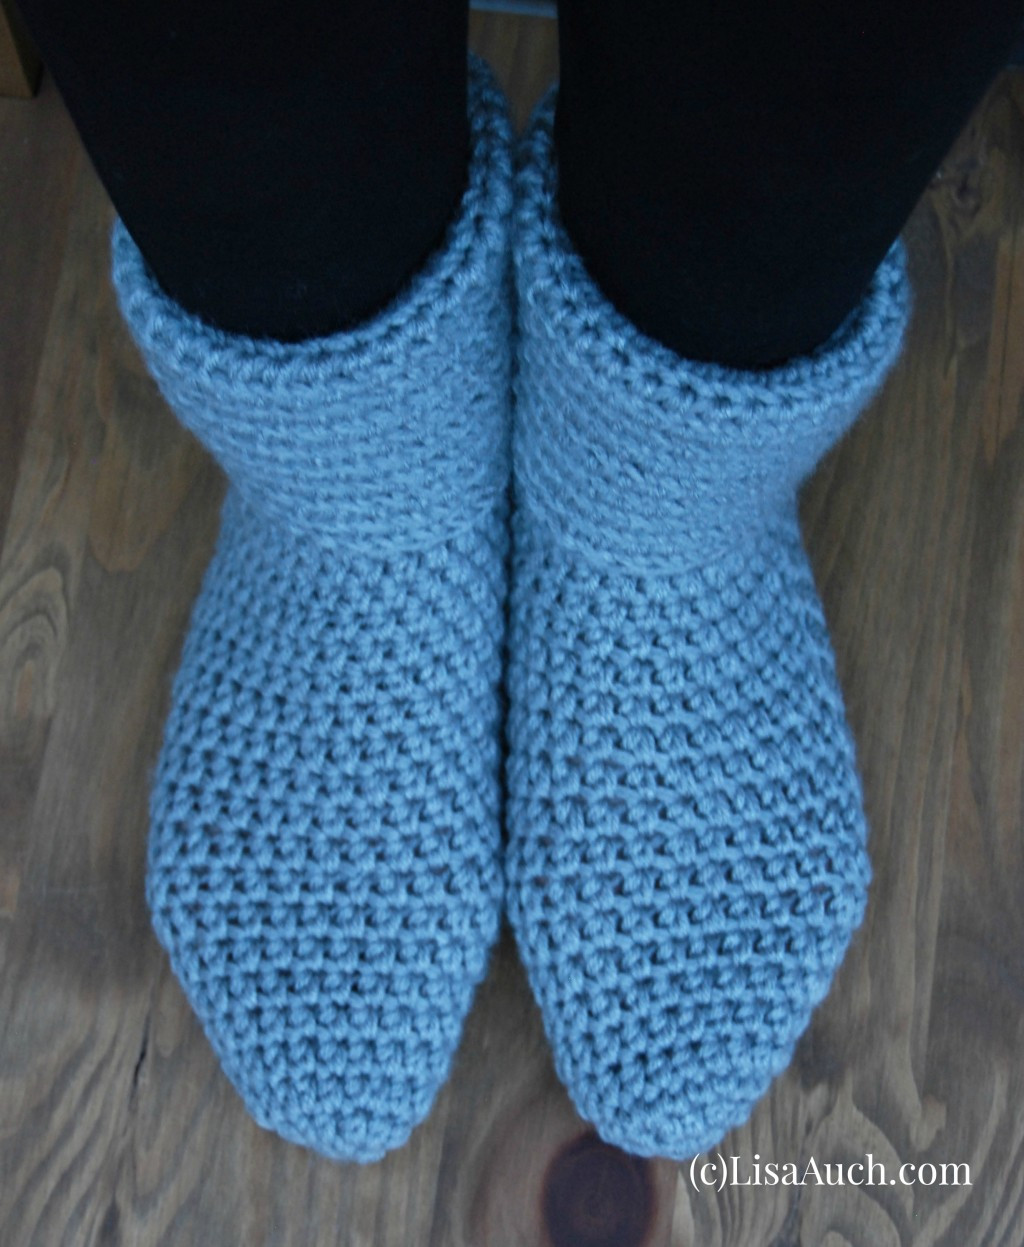 Free Slipper Patterns Fresh Crochet Slipper Boots A Free Crochet Pattern How to Of Luxury 50 Ideas Free Slipper Patterns